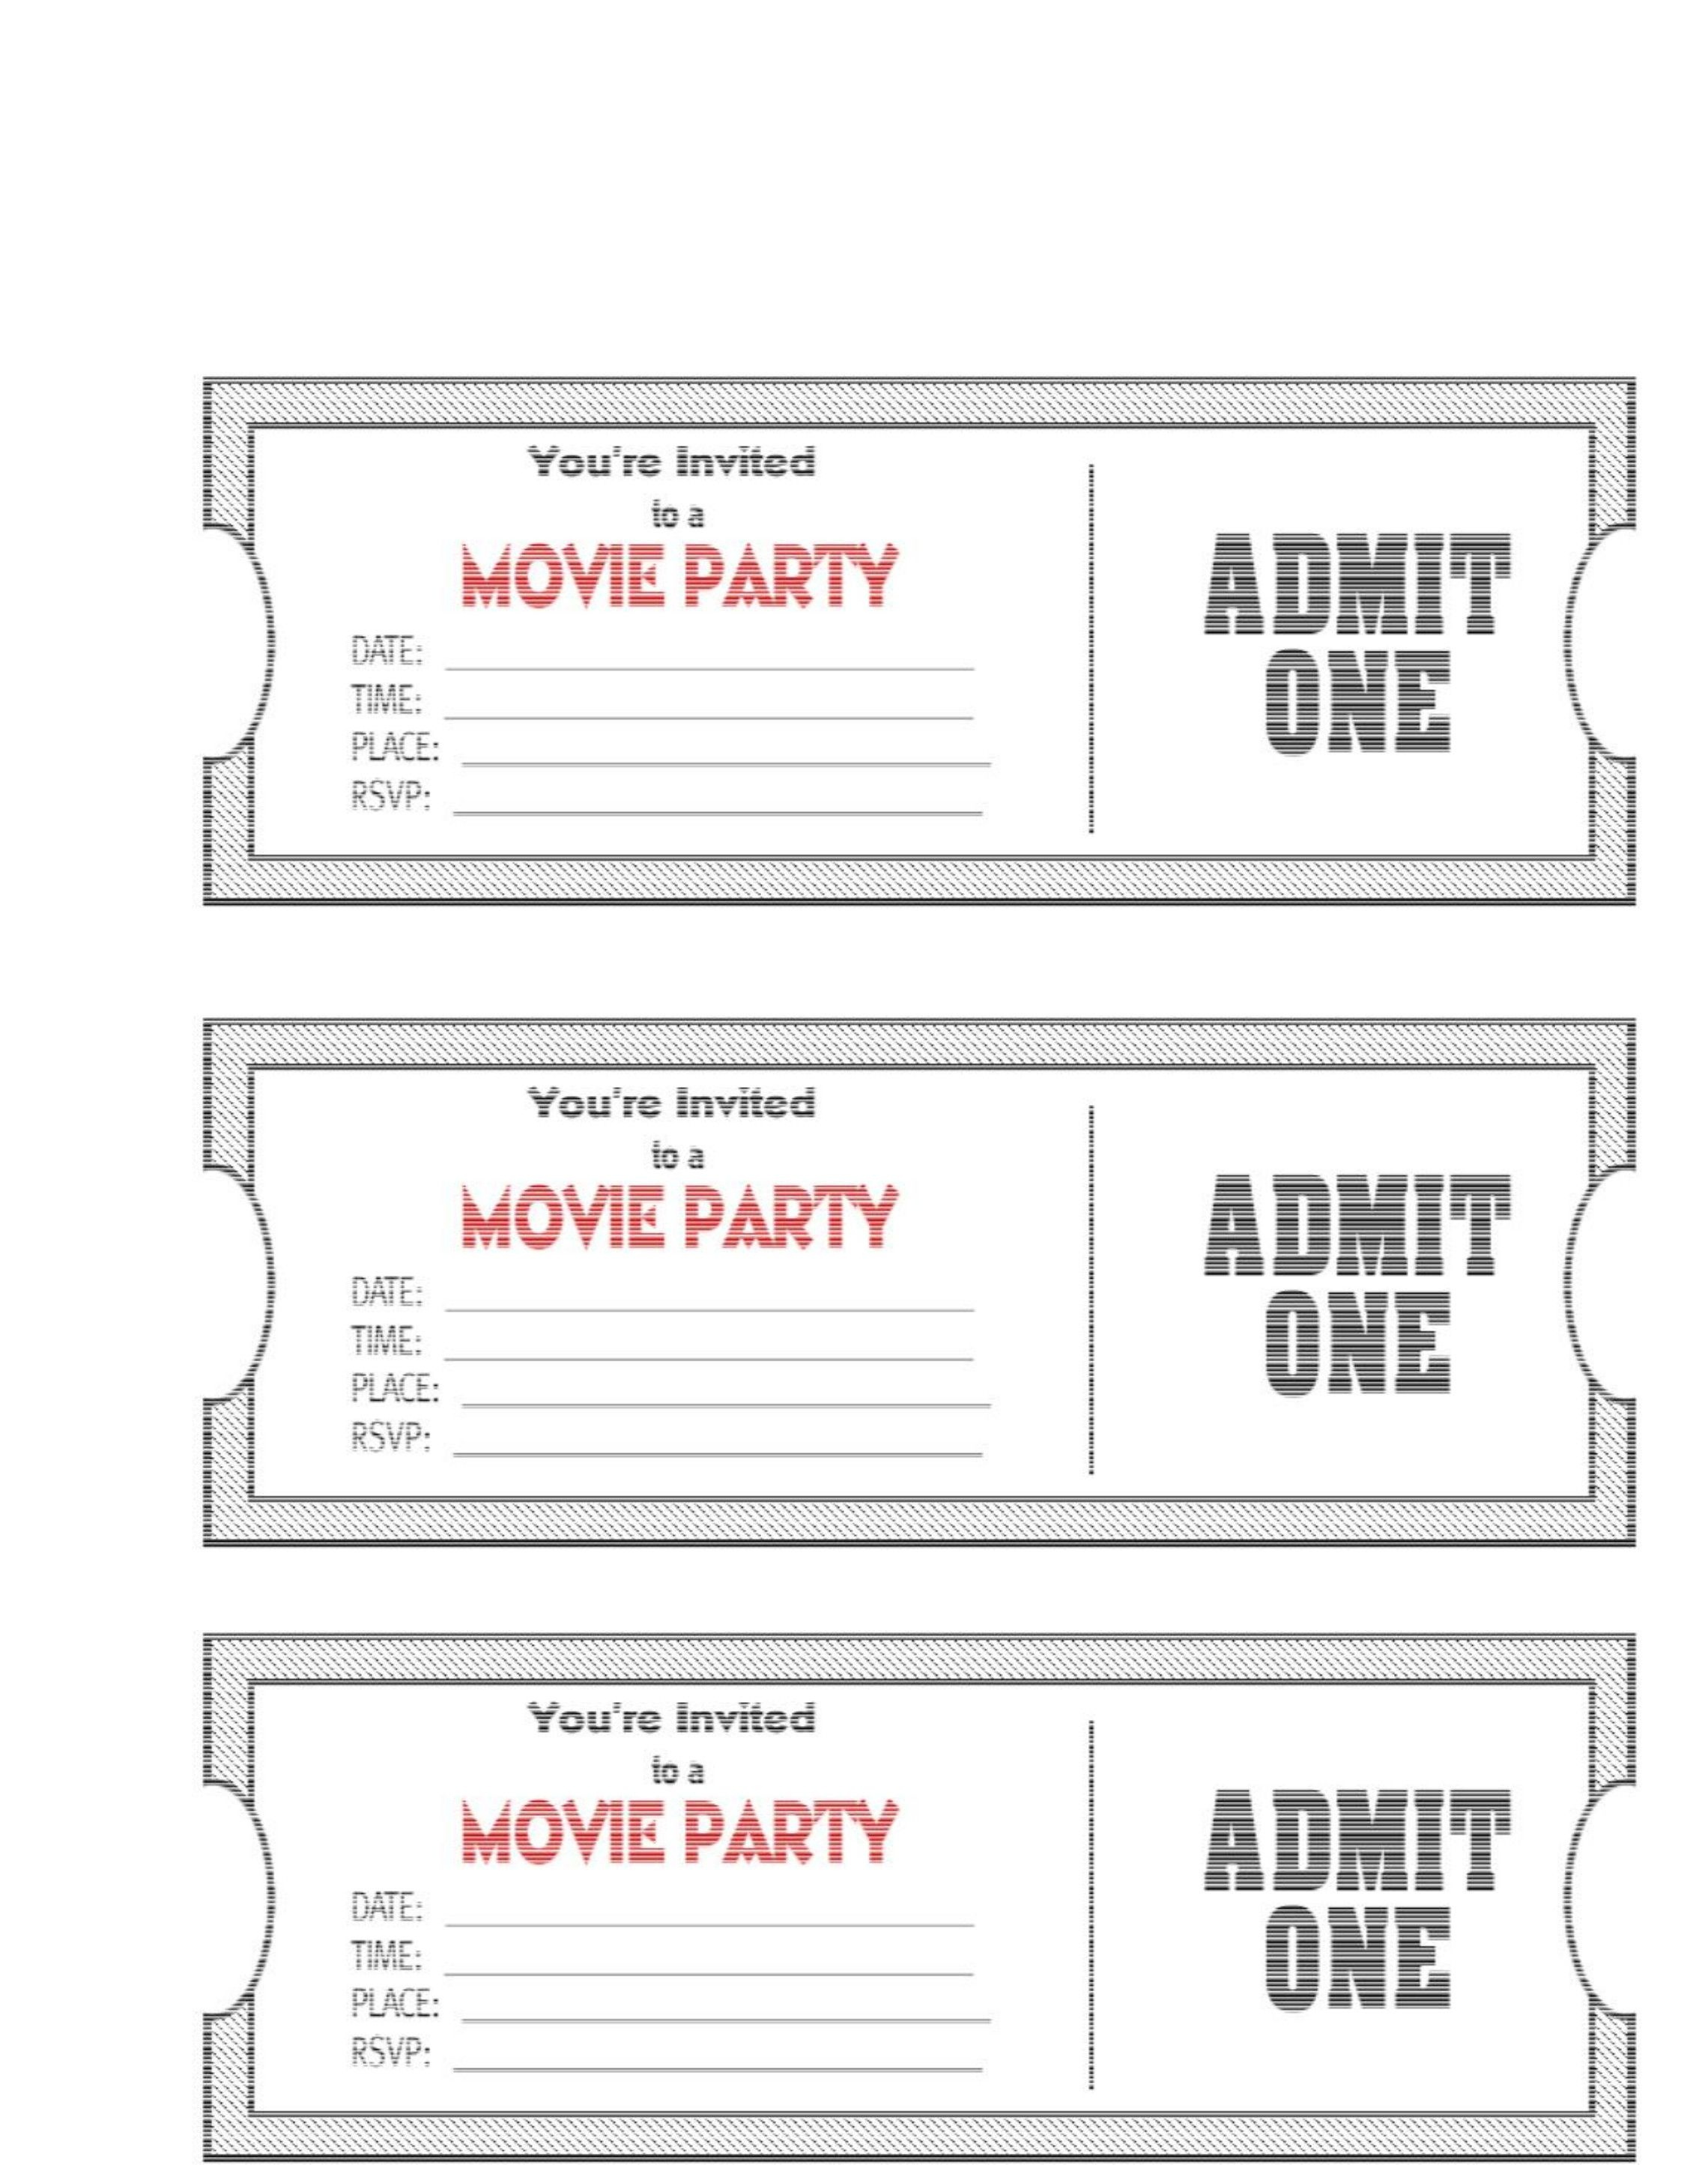 Template Raffle Tickets Free Download Template Raffle Tickets Free - Free Printable Raffle Ticket Template Download